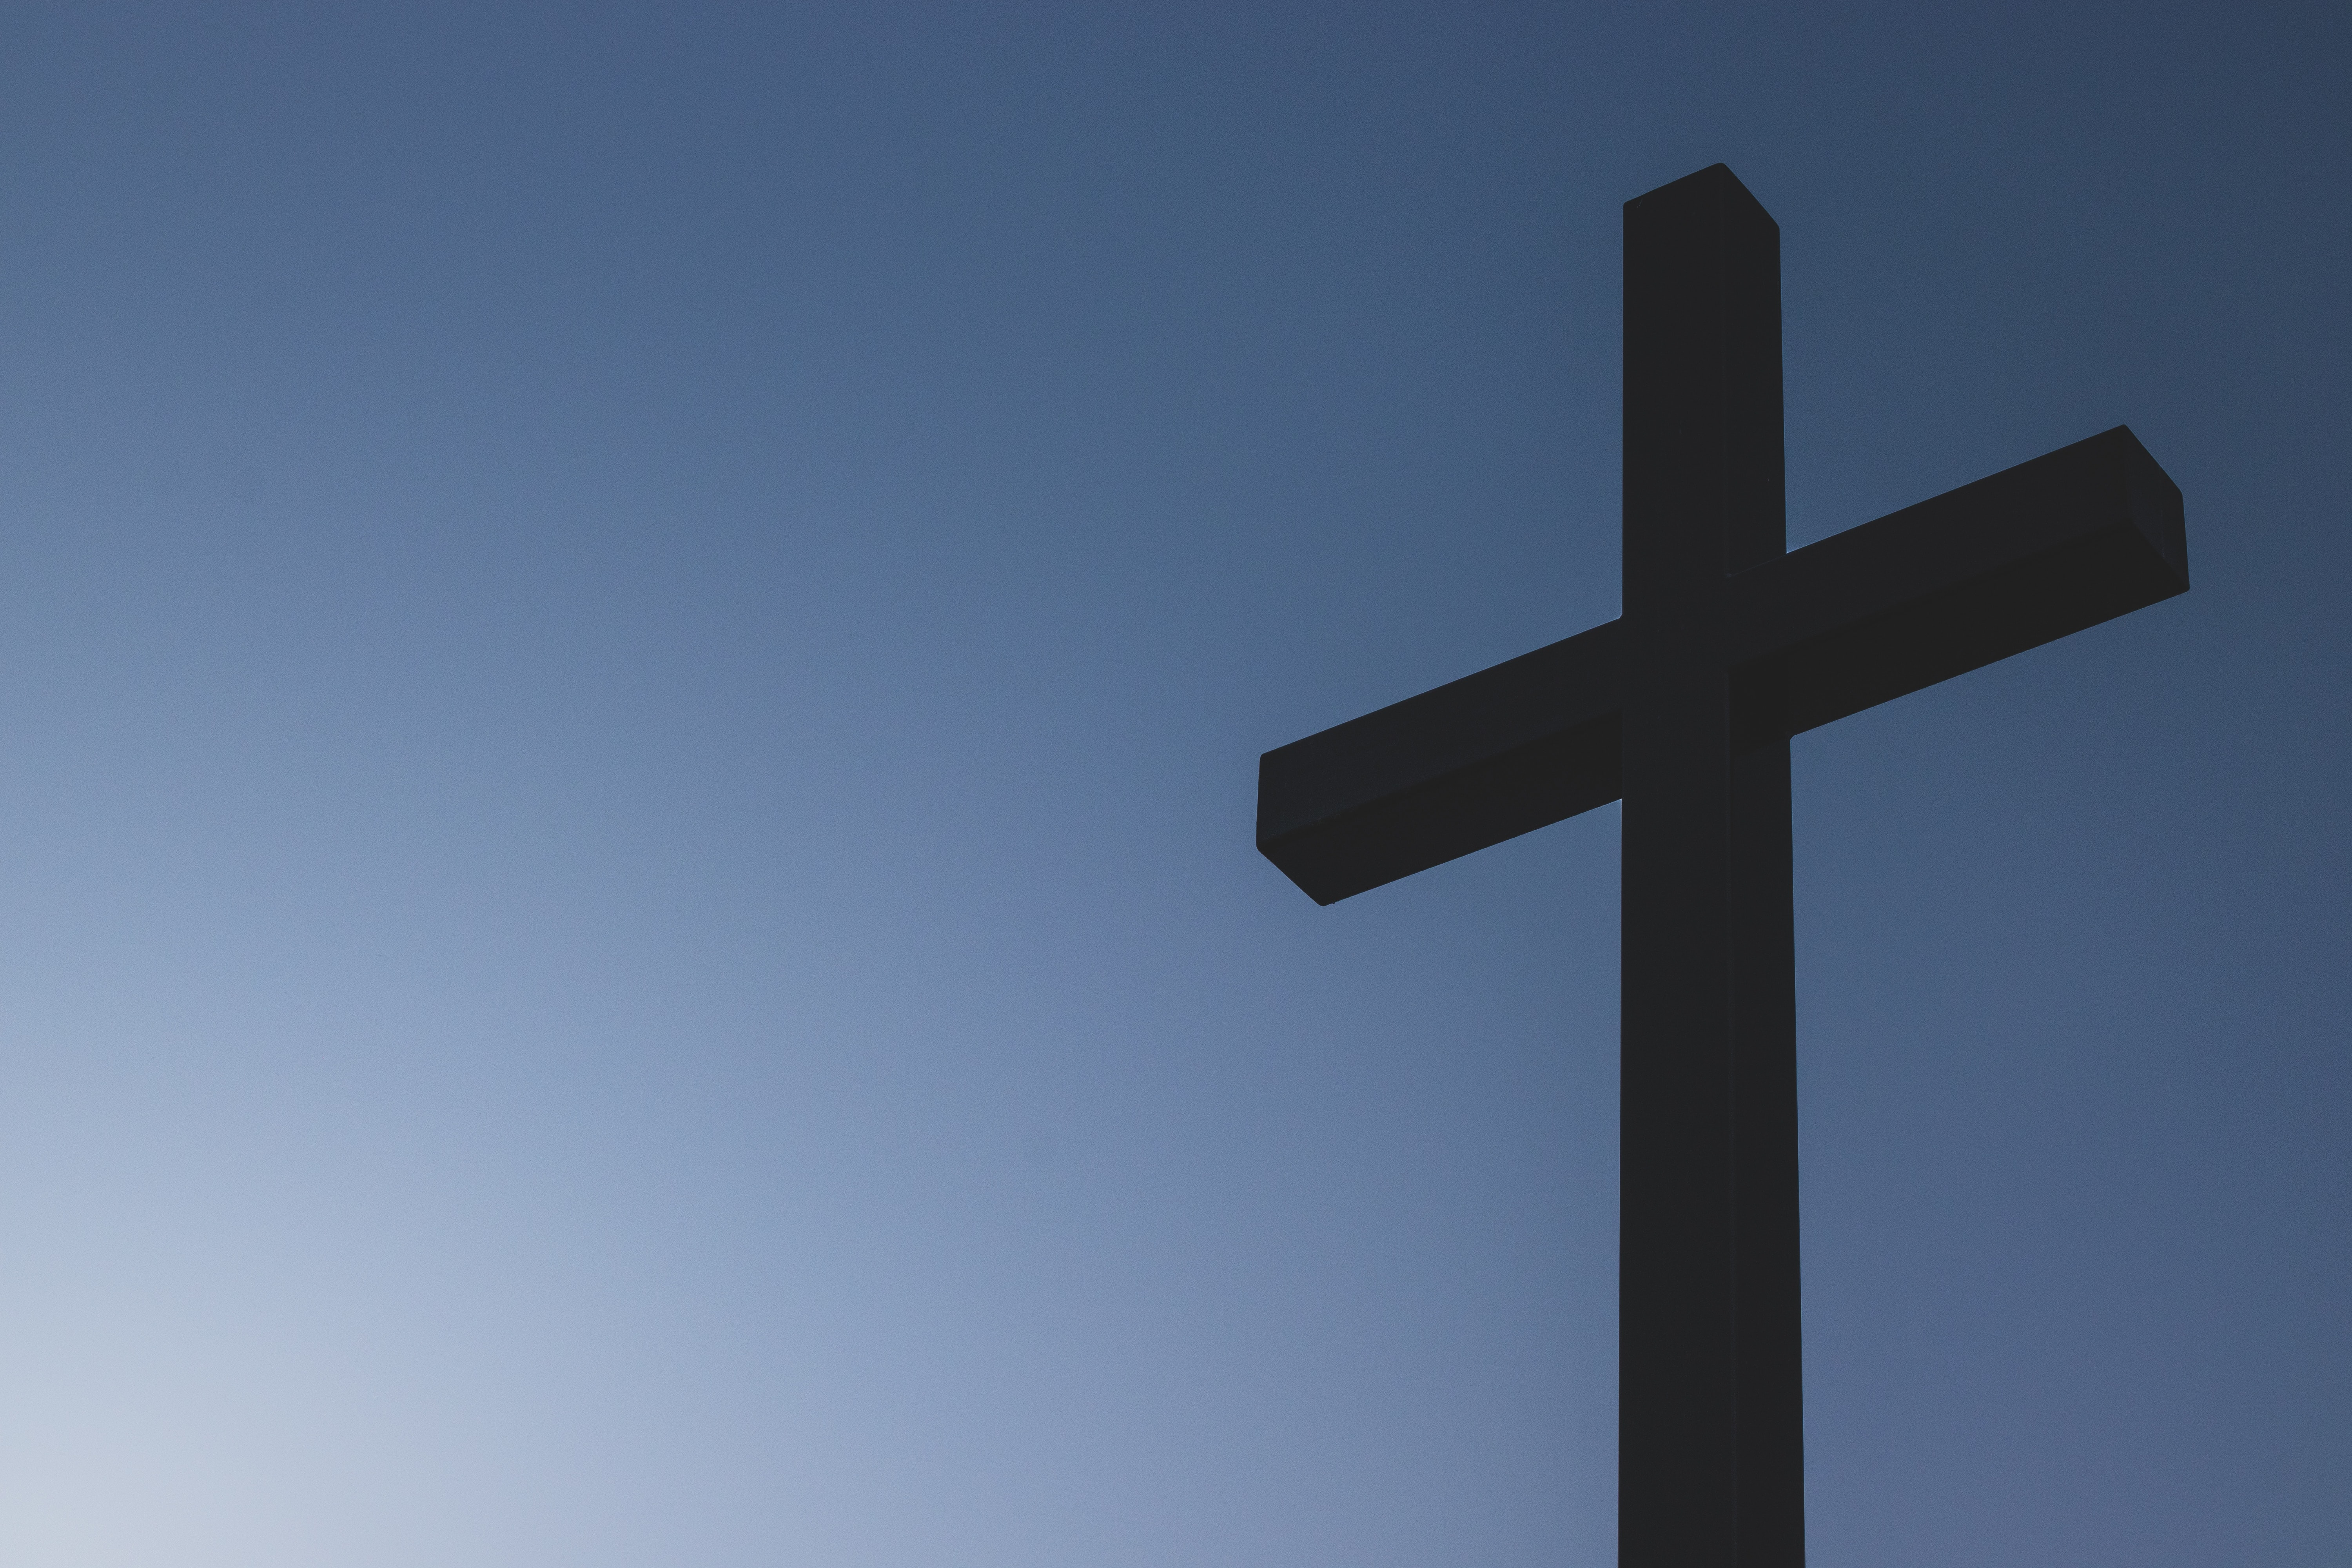 Wooden cross in front of blue sky